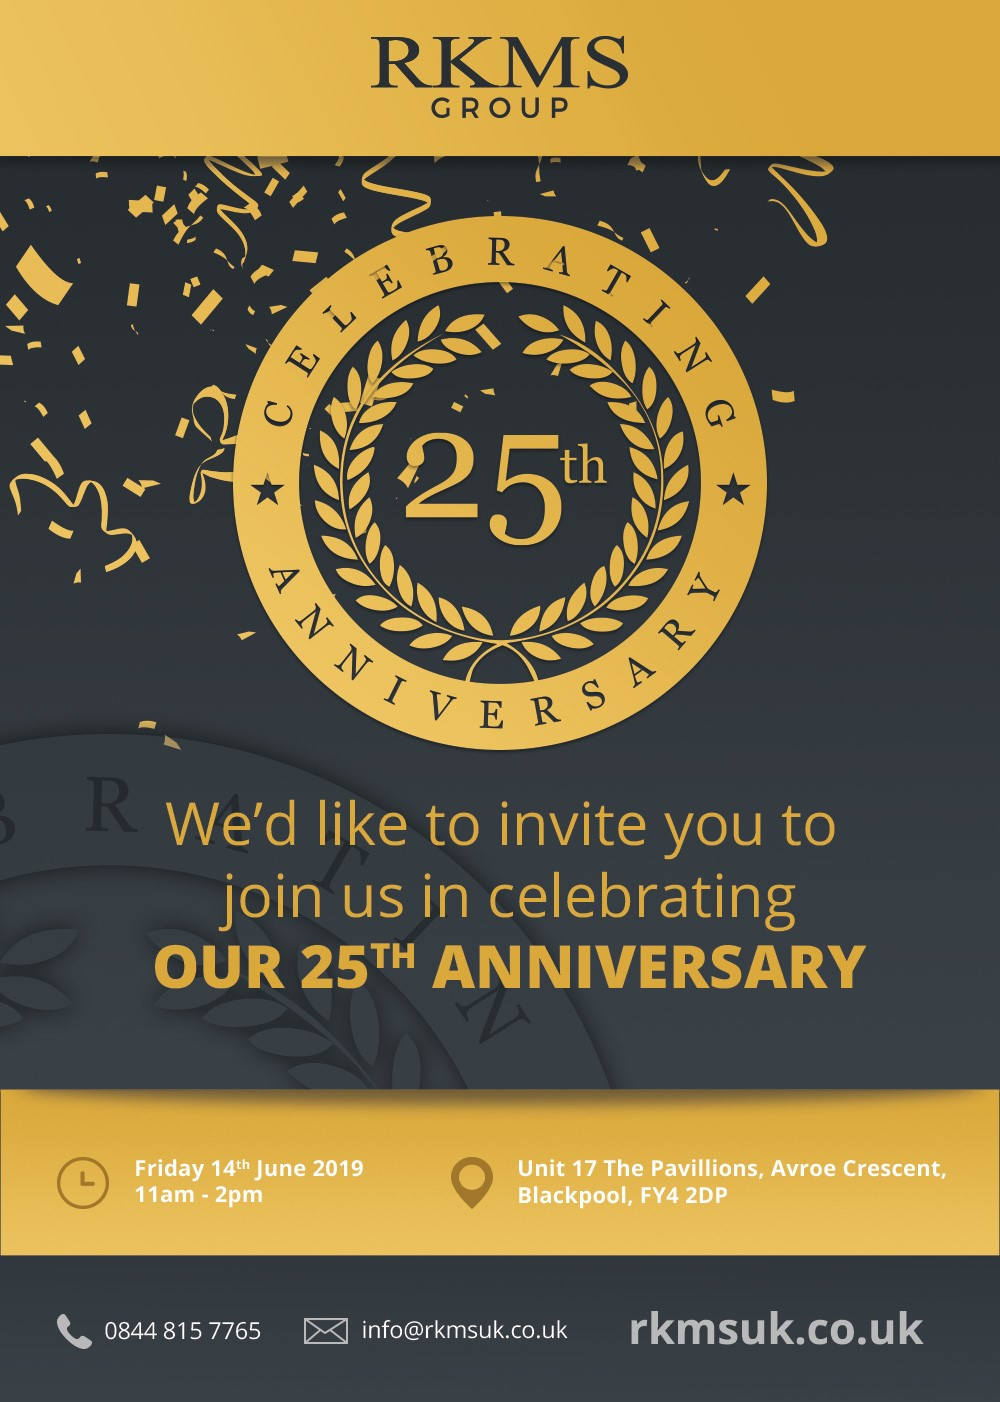 RKMS 25th Anniversary Open Day!